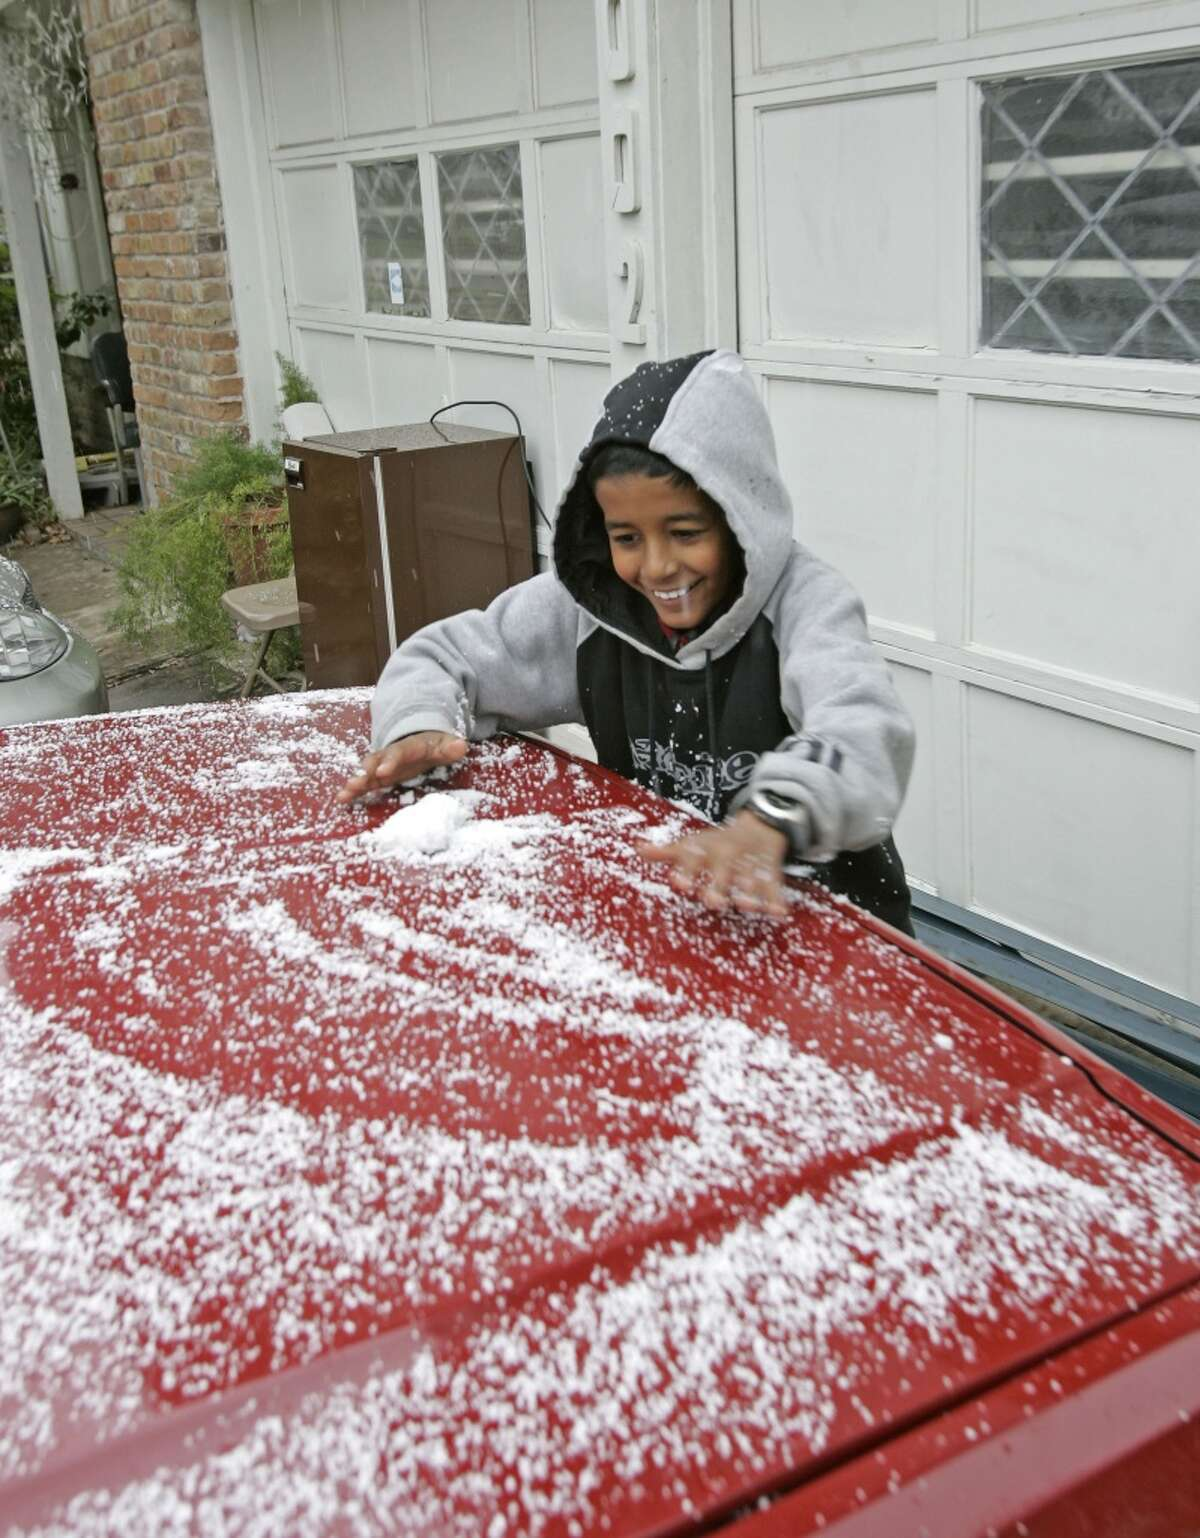 Deepak Guatam, 10, experiences the thrill of gathering the makings for his first snowball in west Houston on Christmas Day in 2004.